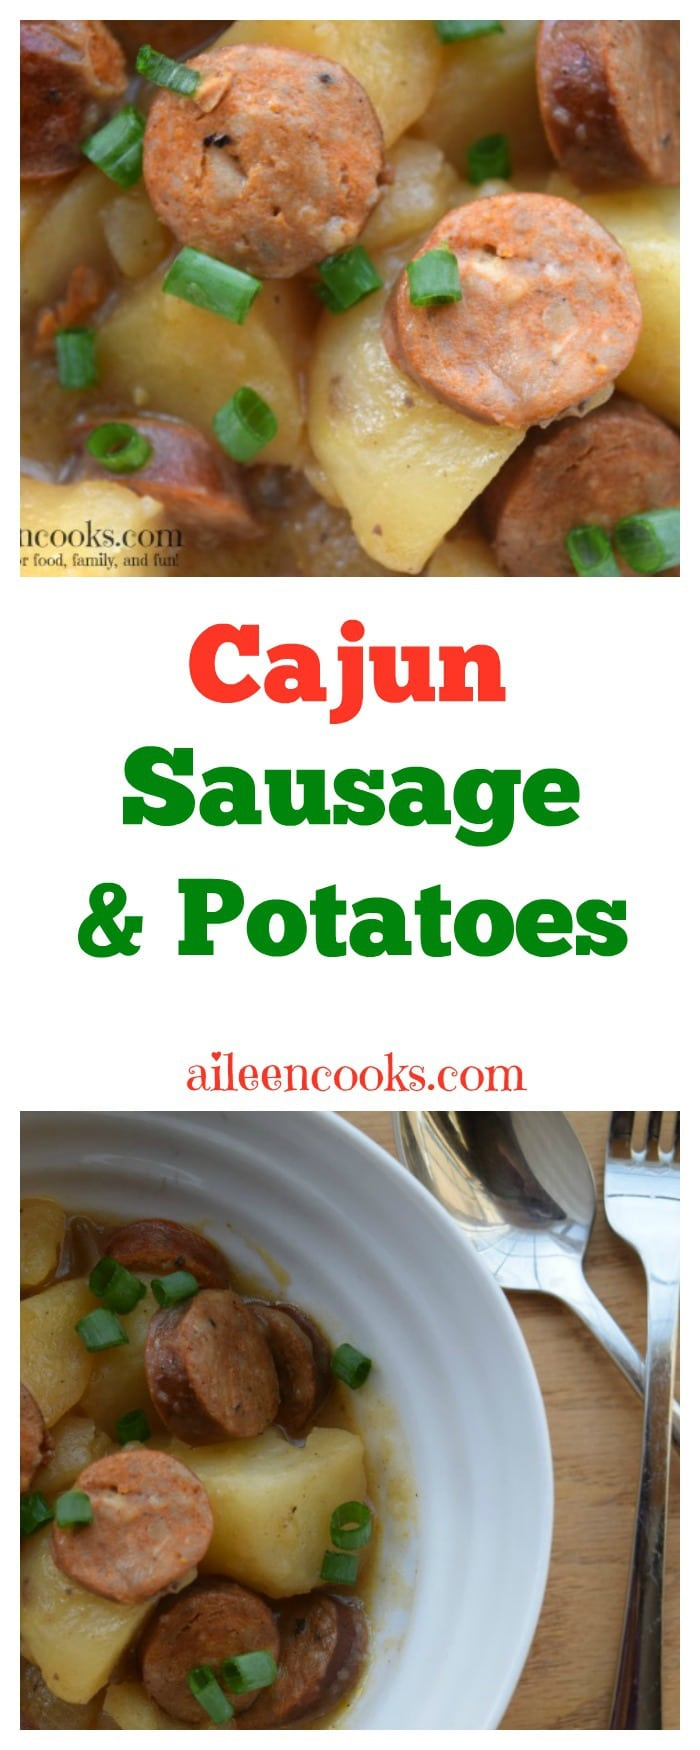 Crockpot Cajun Sausage and Potatoes is a delicious 5 ingredient recipe that's perfect for the cooler months.